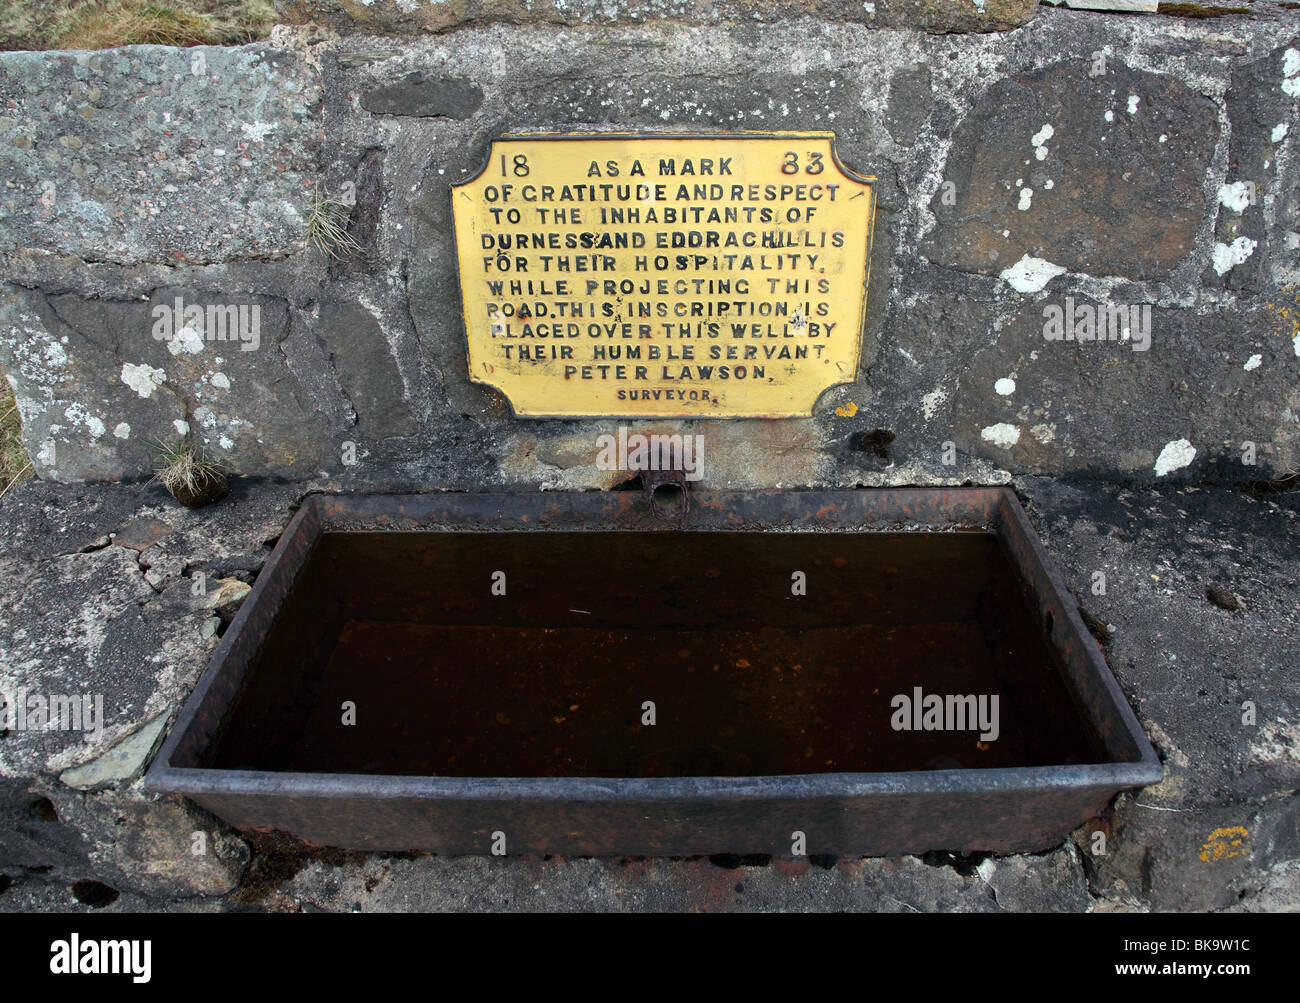 Inscription on Well Dedicated to the People of Durness and Edrachill by Surveyor Peter Lawson Durness Sutherland - Stock Image